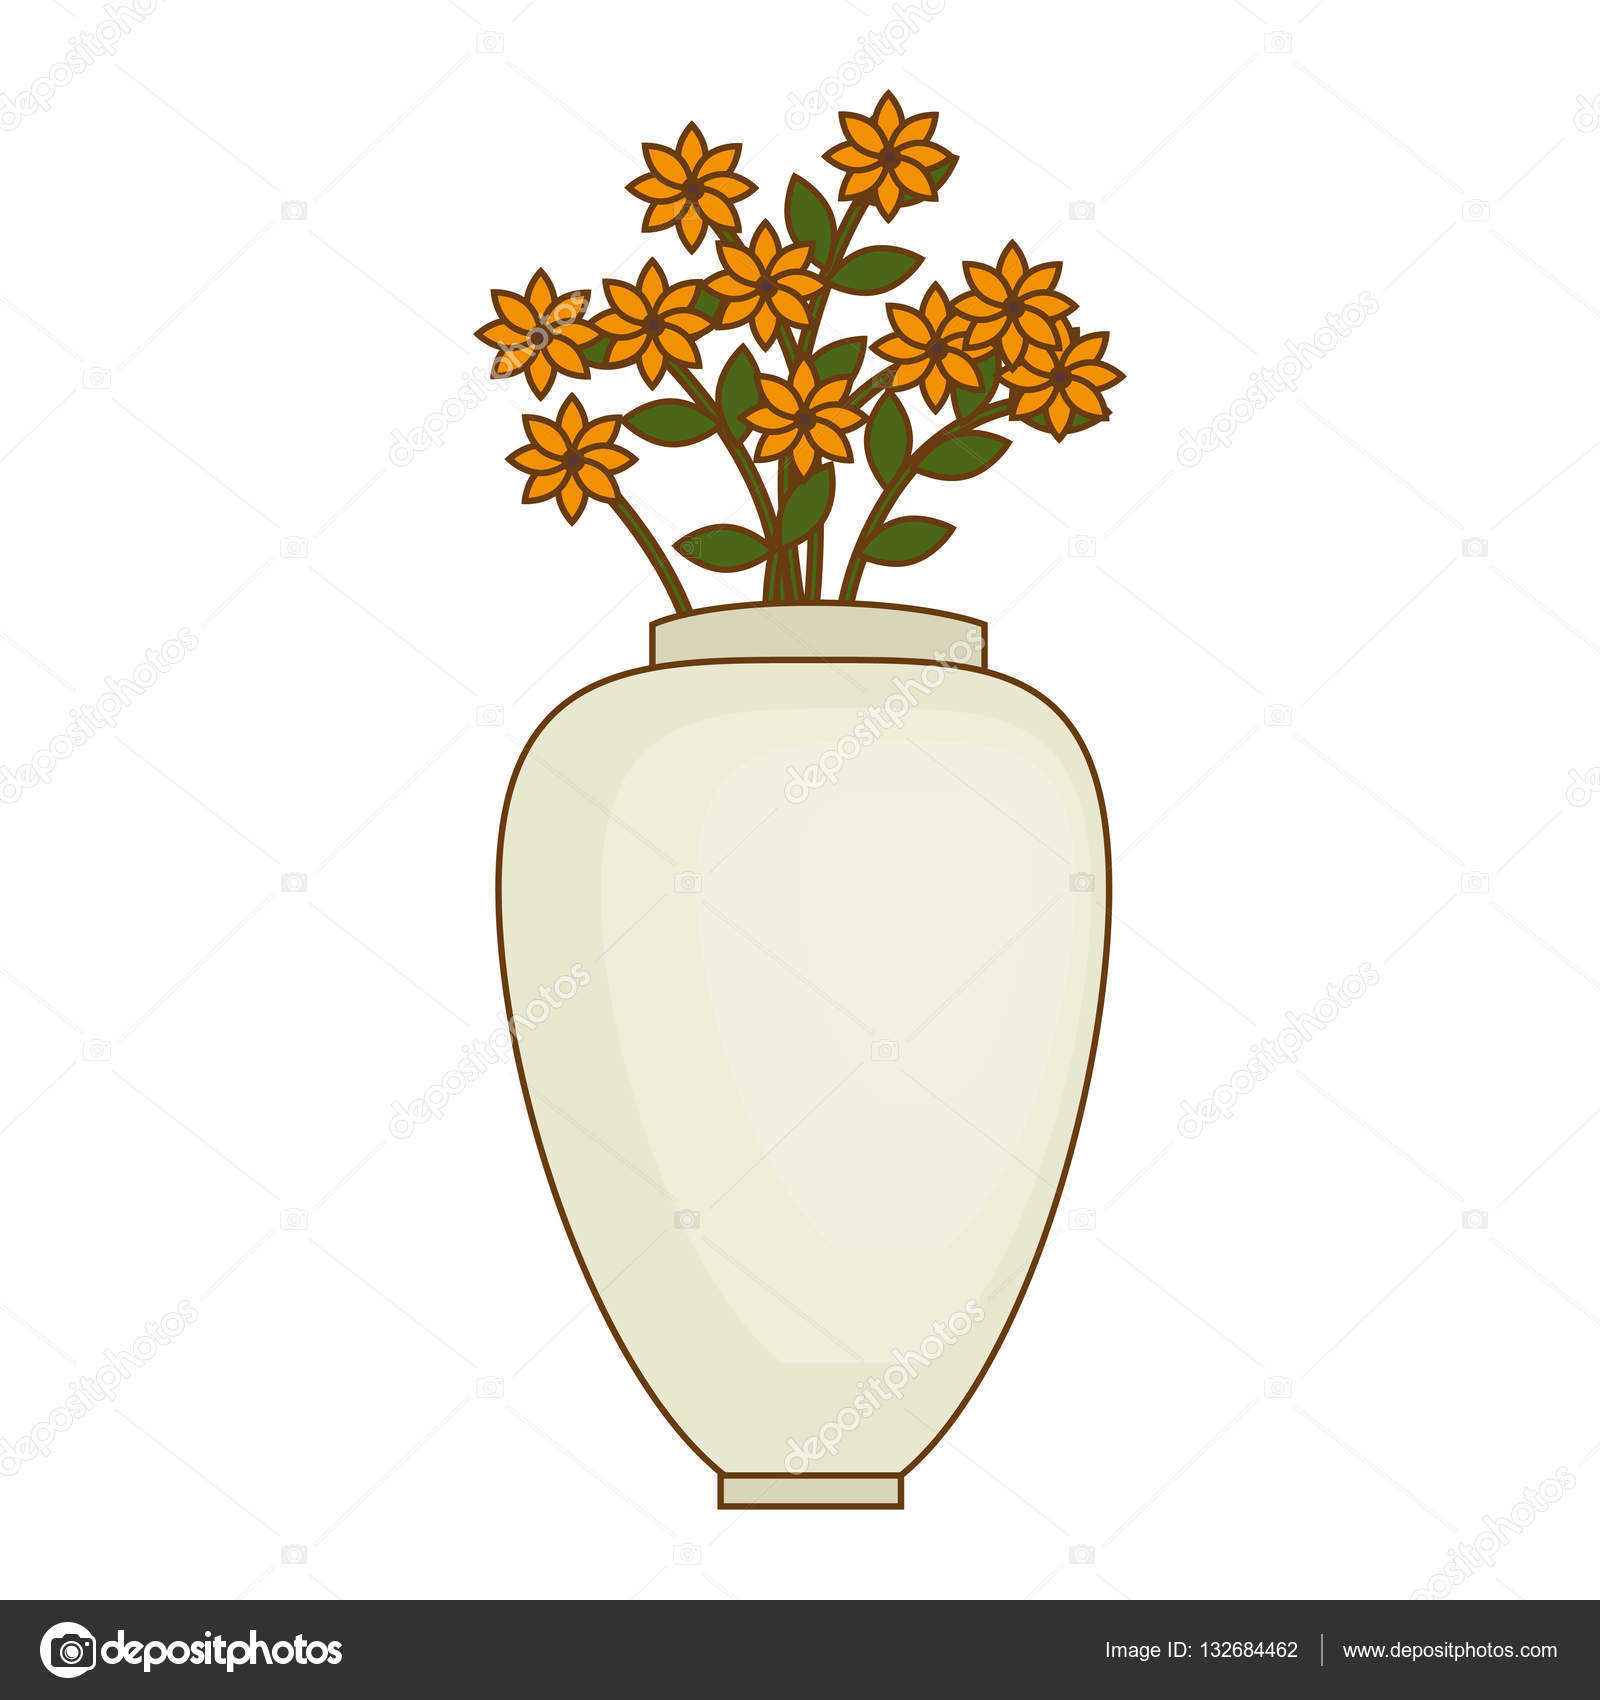 Áˆ Of Vases With Flowers Stock Drawings Royalty Free Flower Vase Pictures Download On Depositphotos